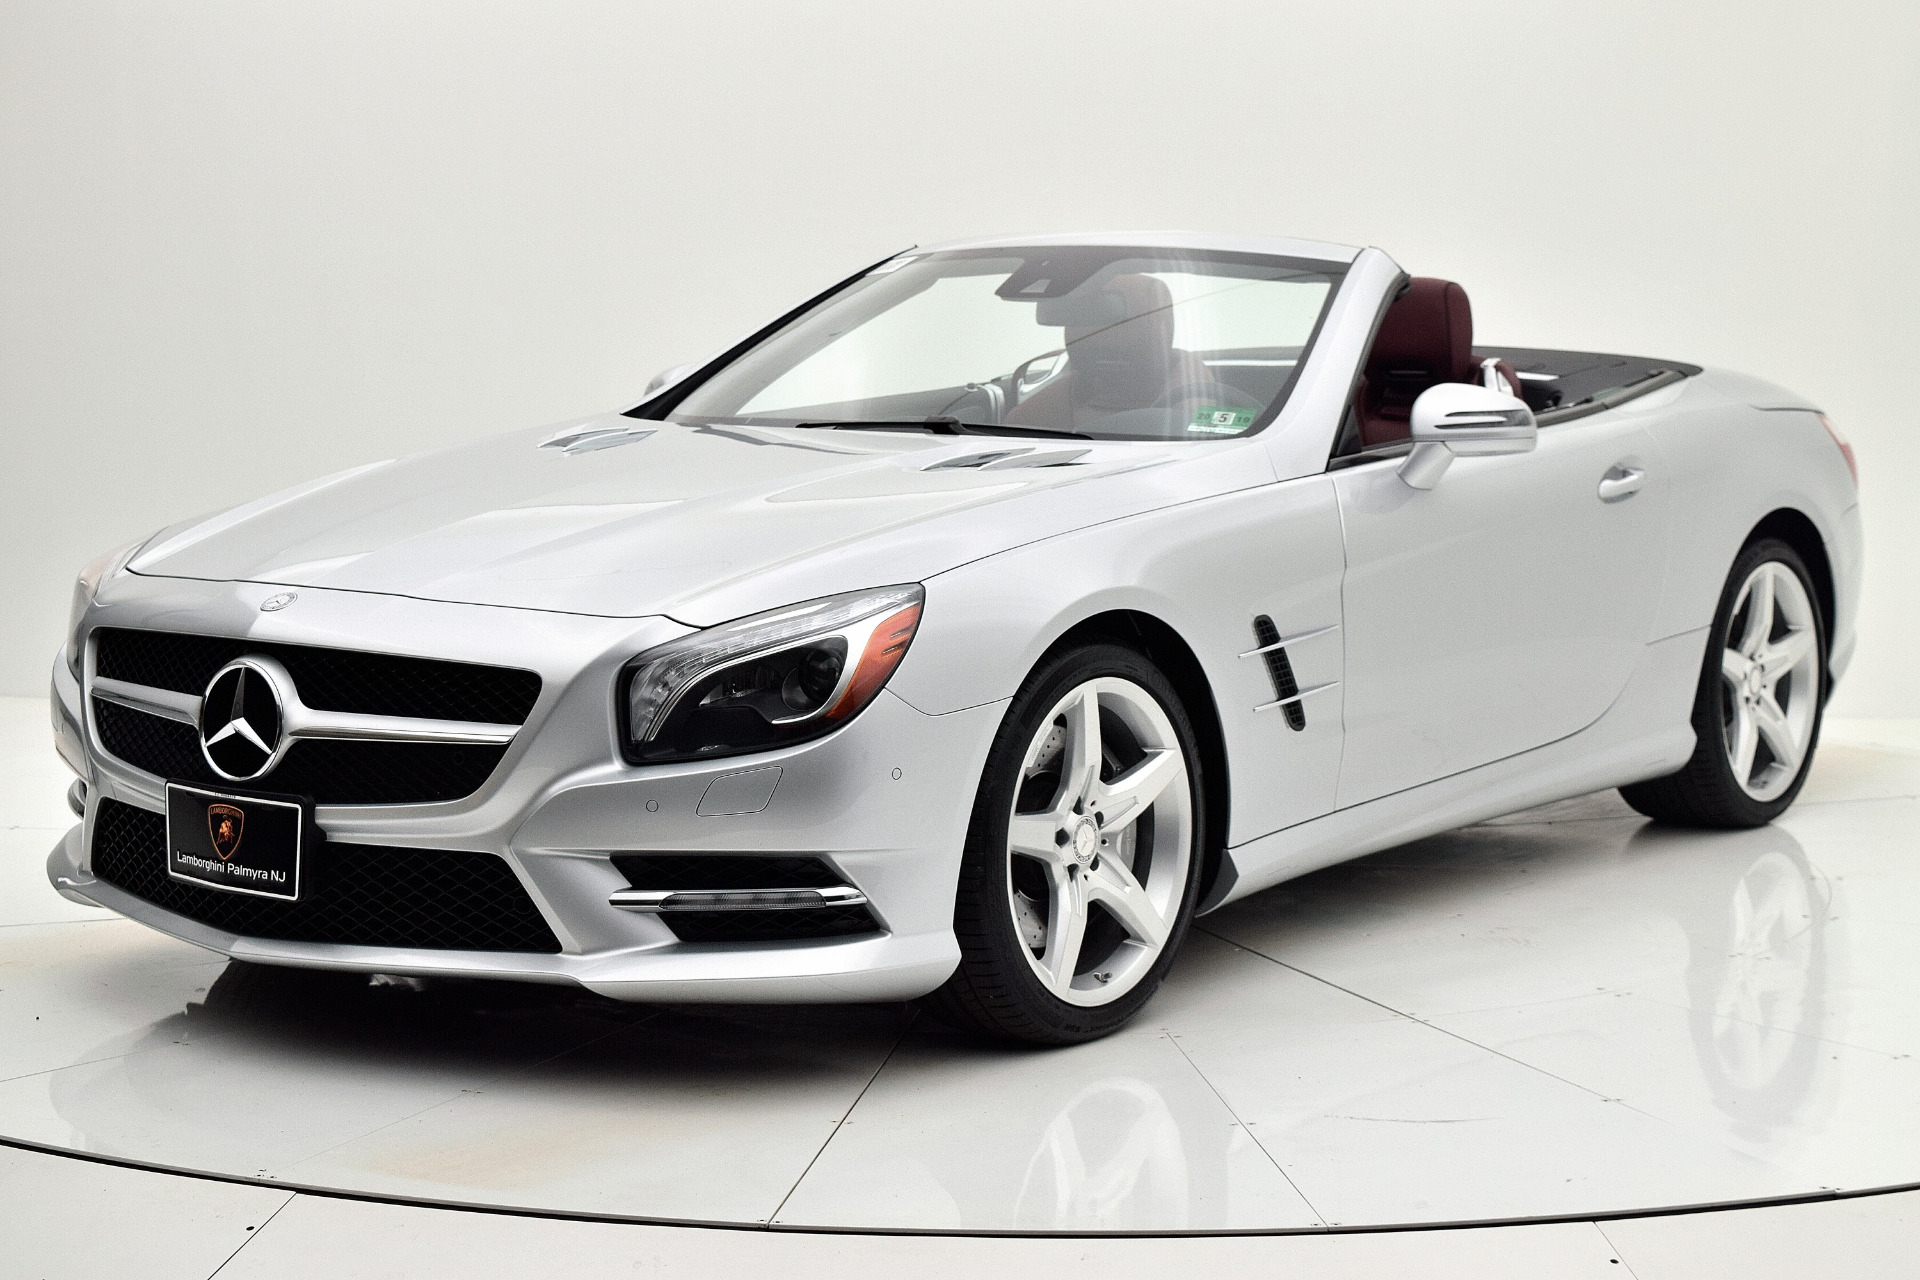 Mercedes-Benz SL-Class 2013 For Sale $52880 Stock Number 18L123AEB